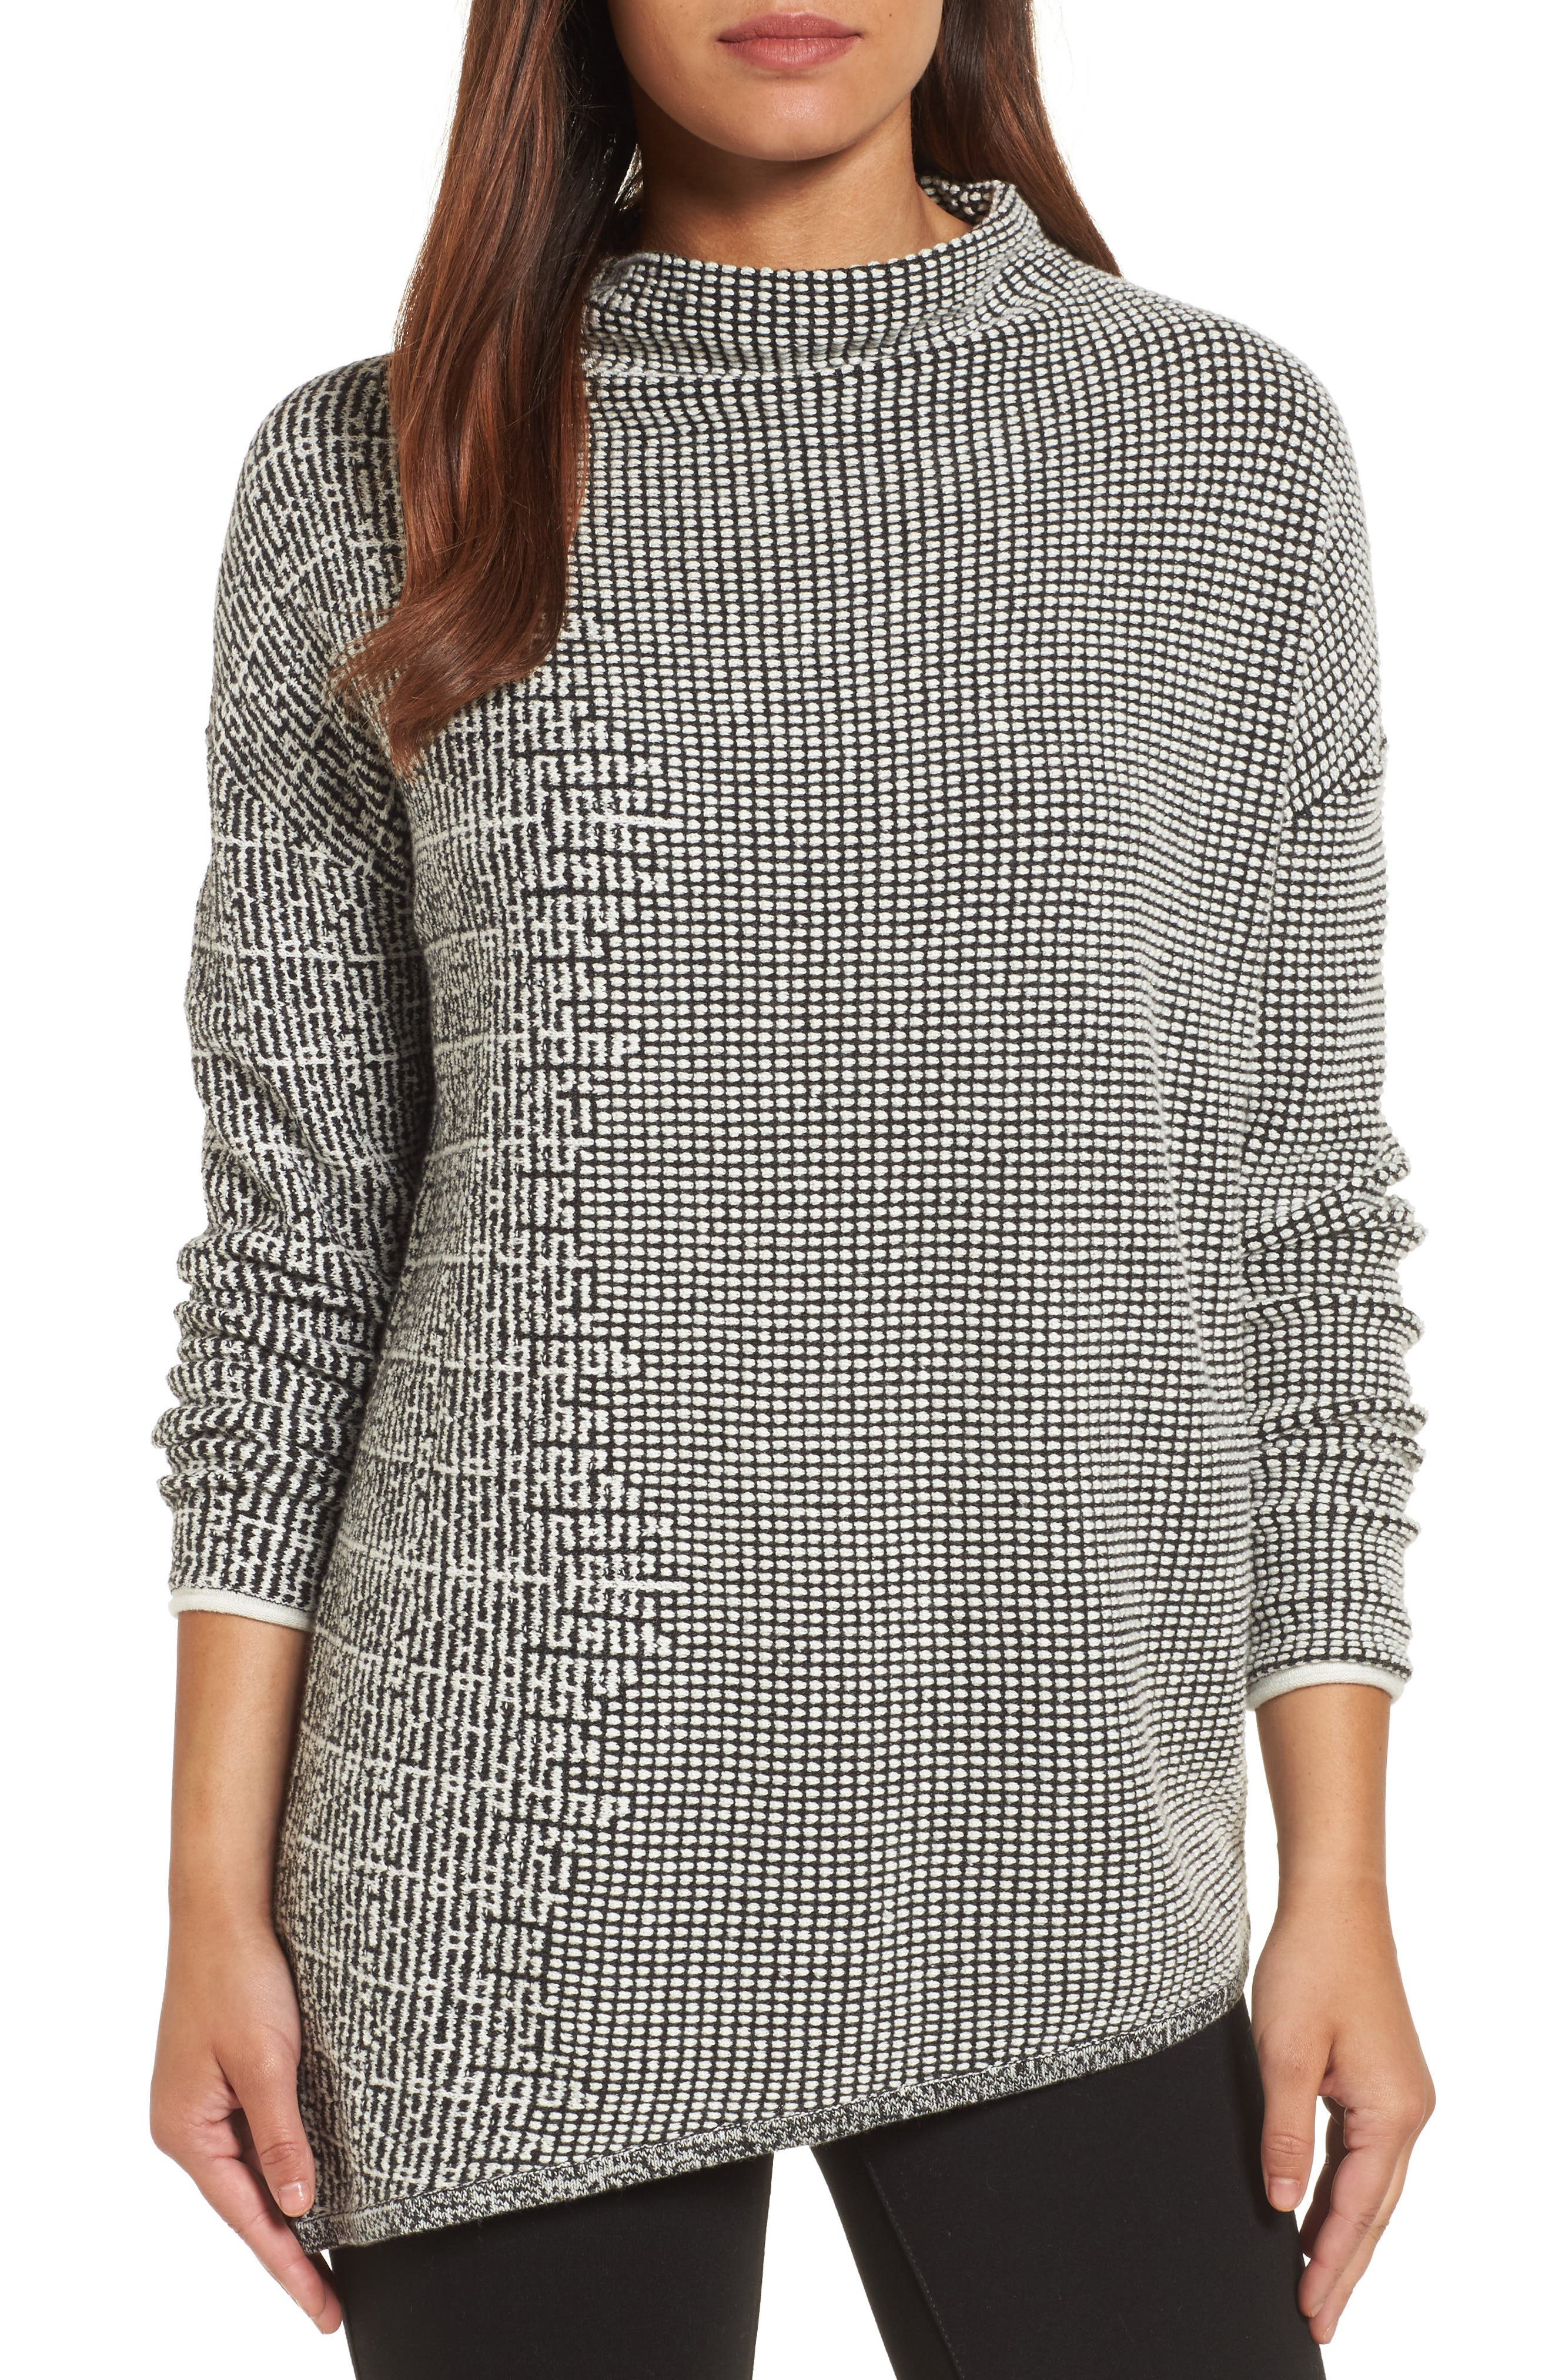 Alternate Image 1 Selected - NIC+ZOE Frosted Fall Sweater (Regular & Petite)